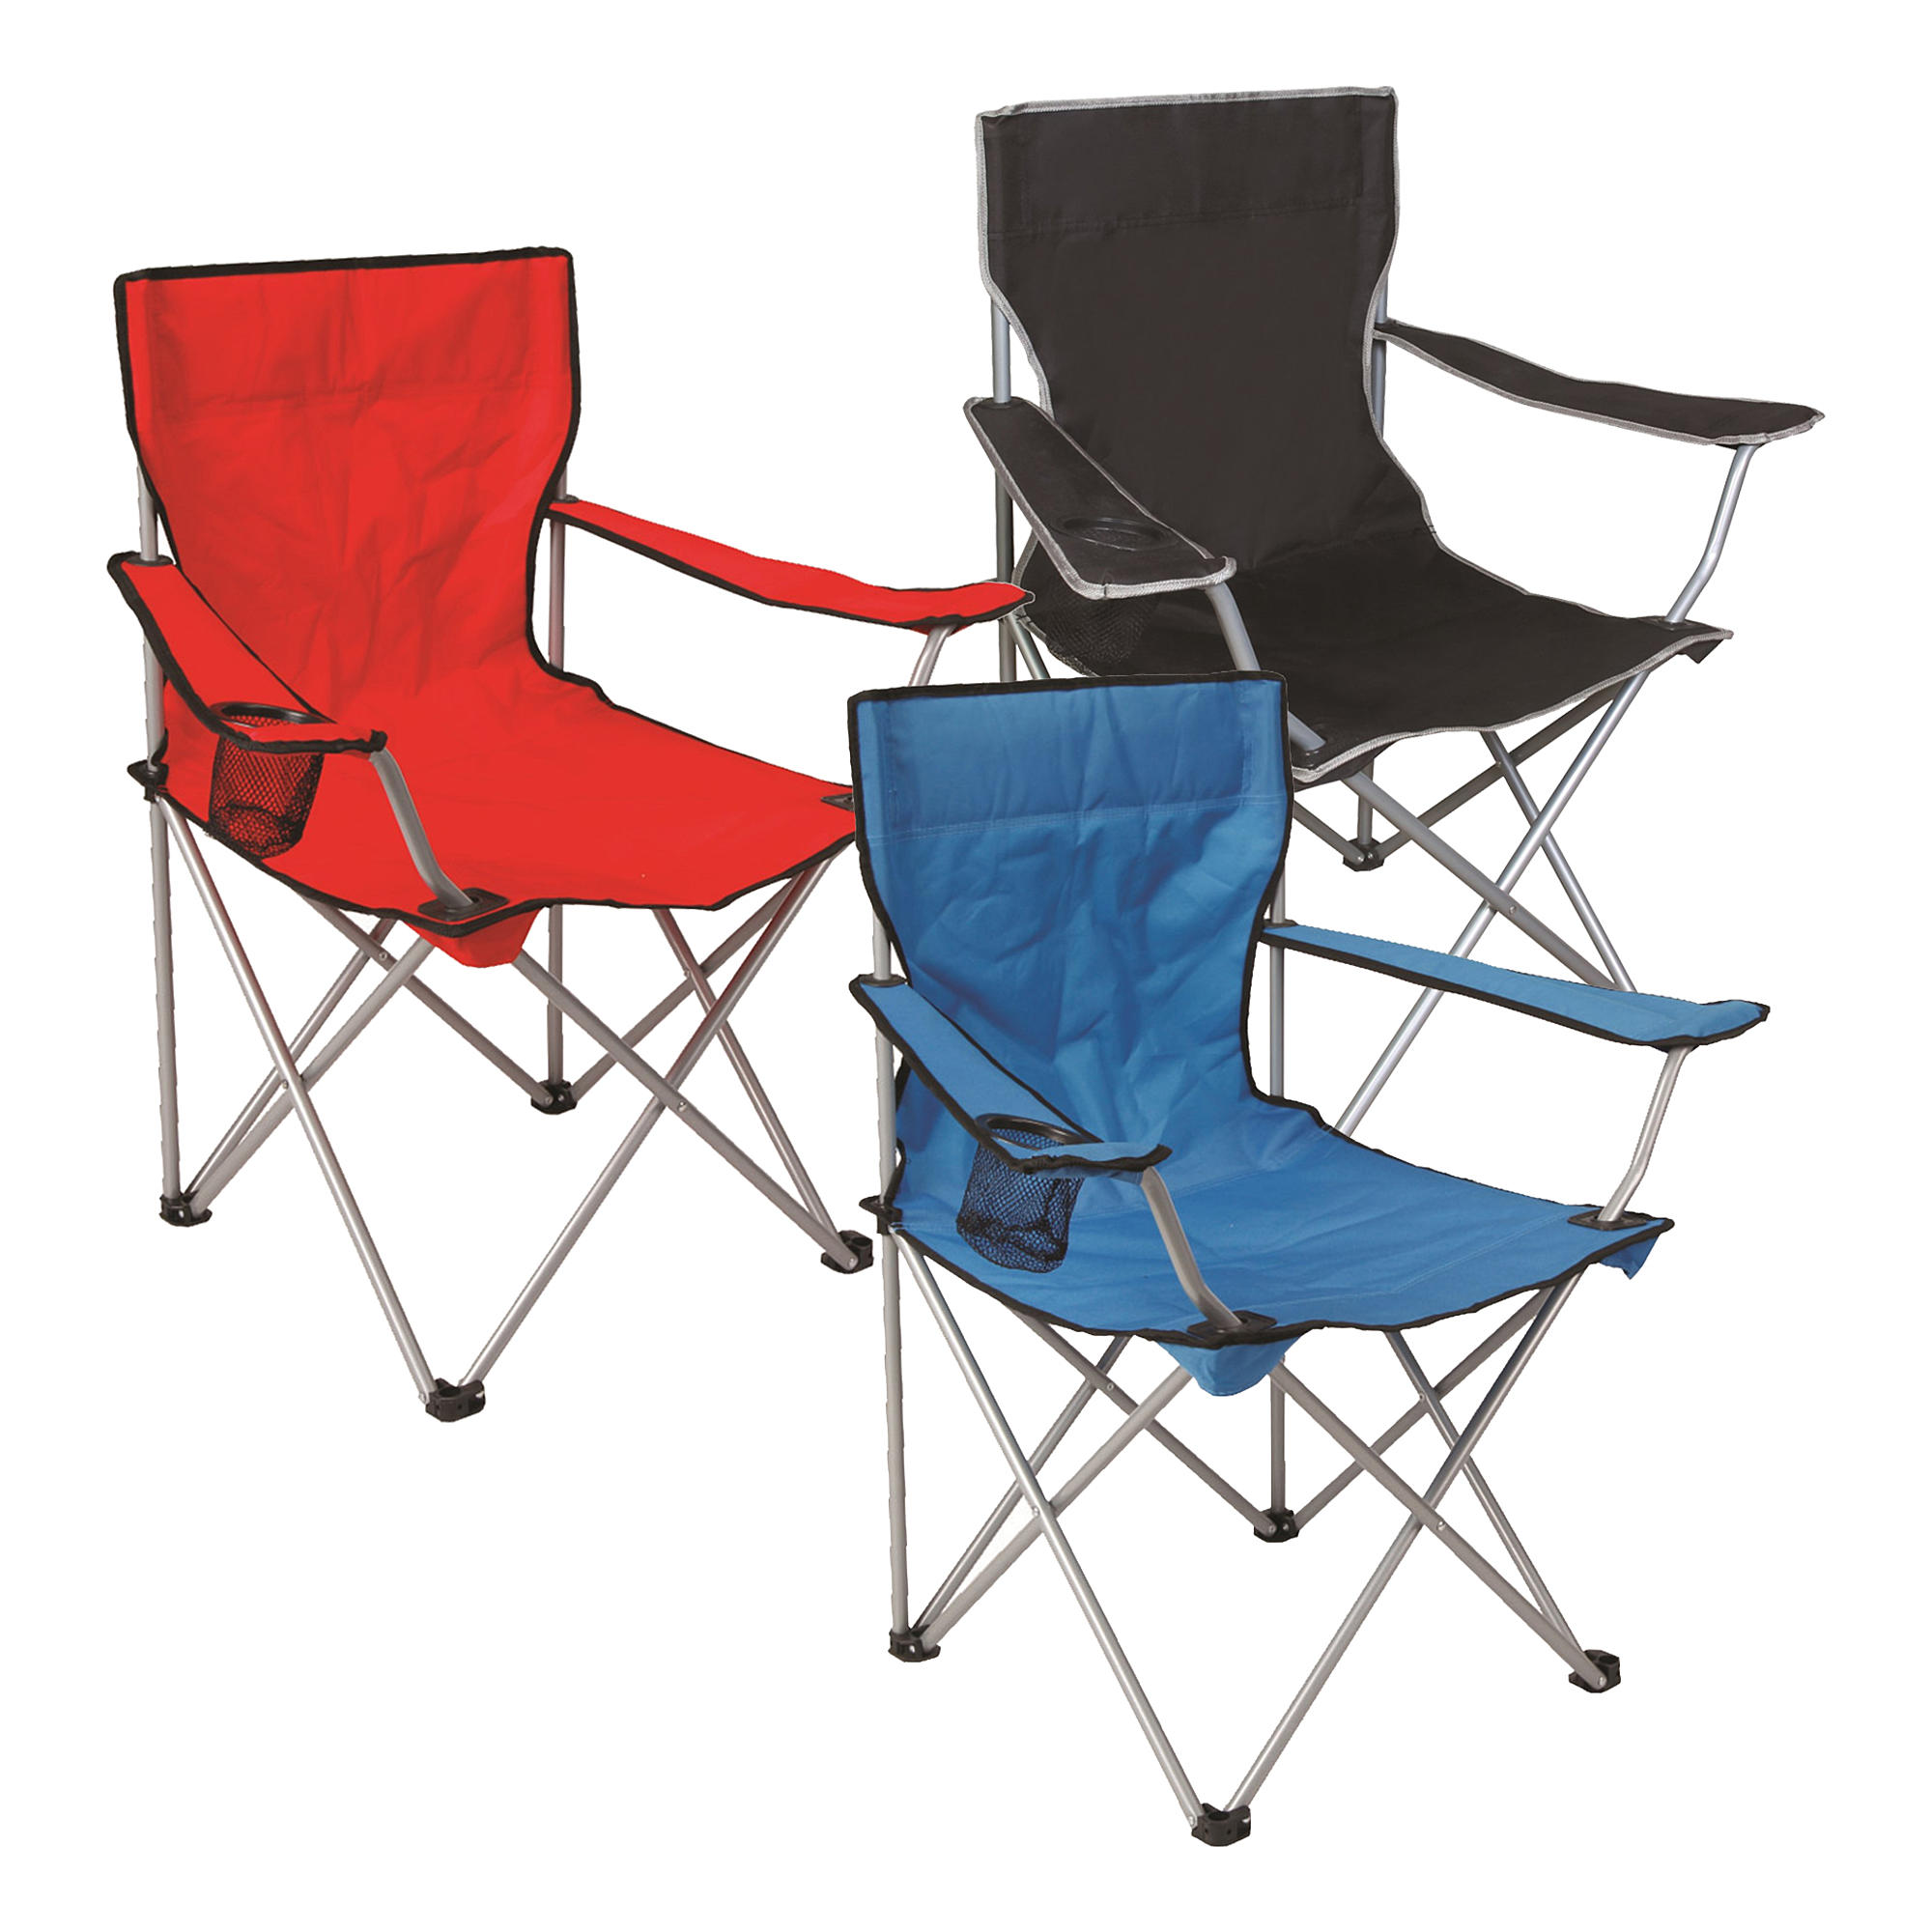 northwest territory chairs heavy duty lawn canada in store lightweight sports chair for 8